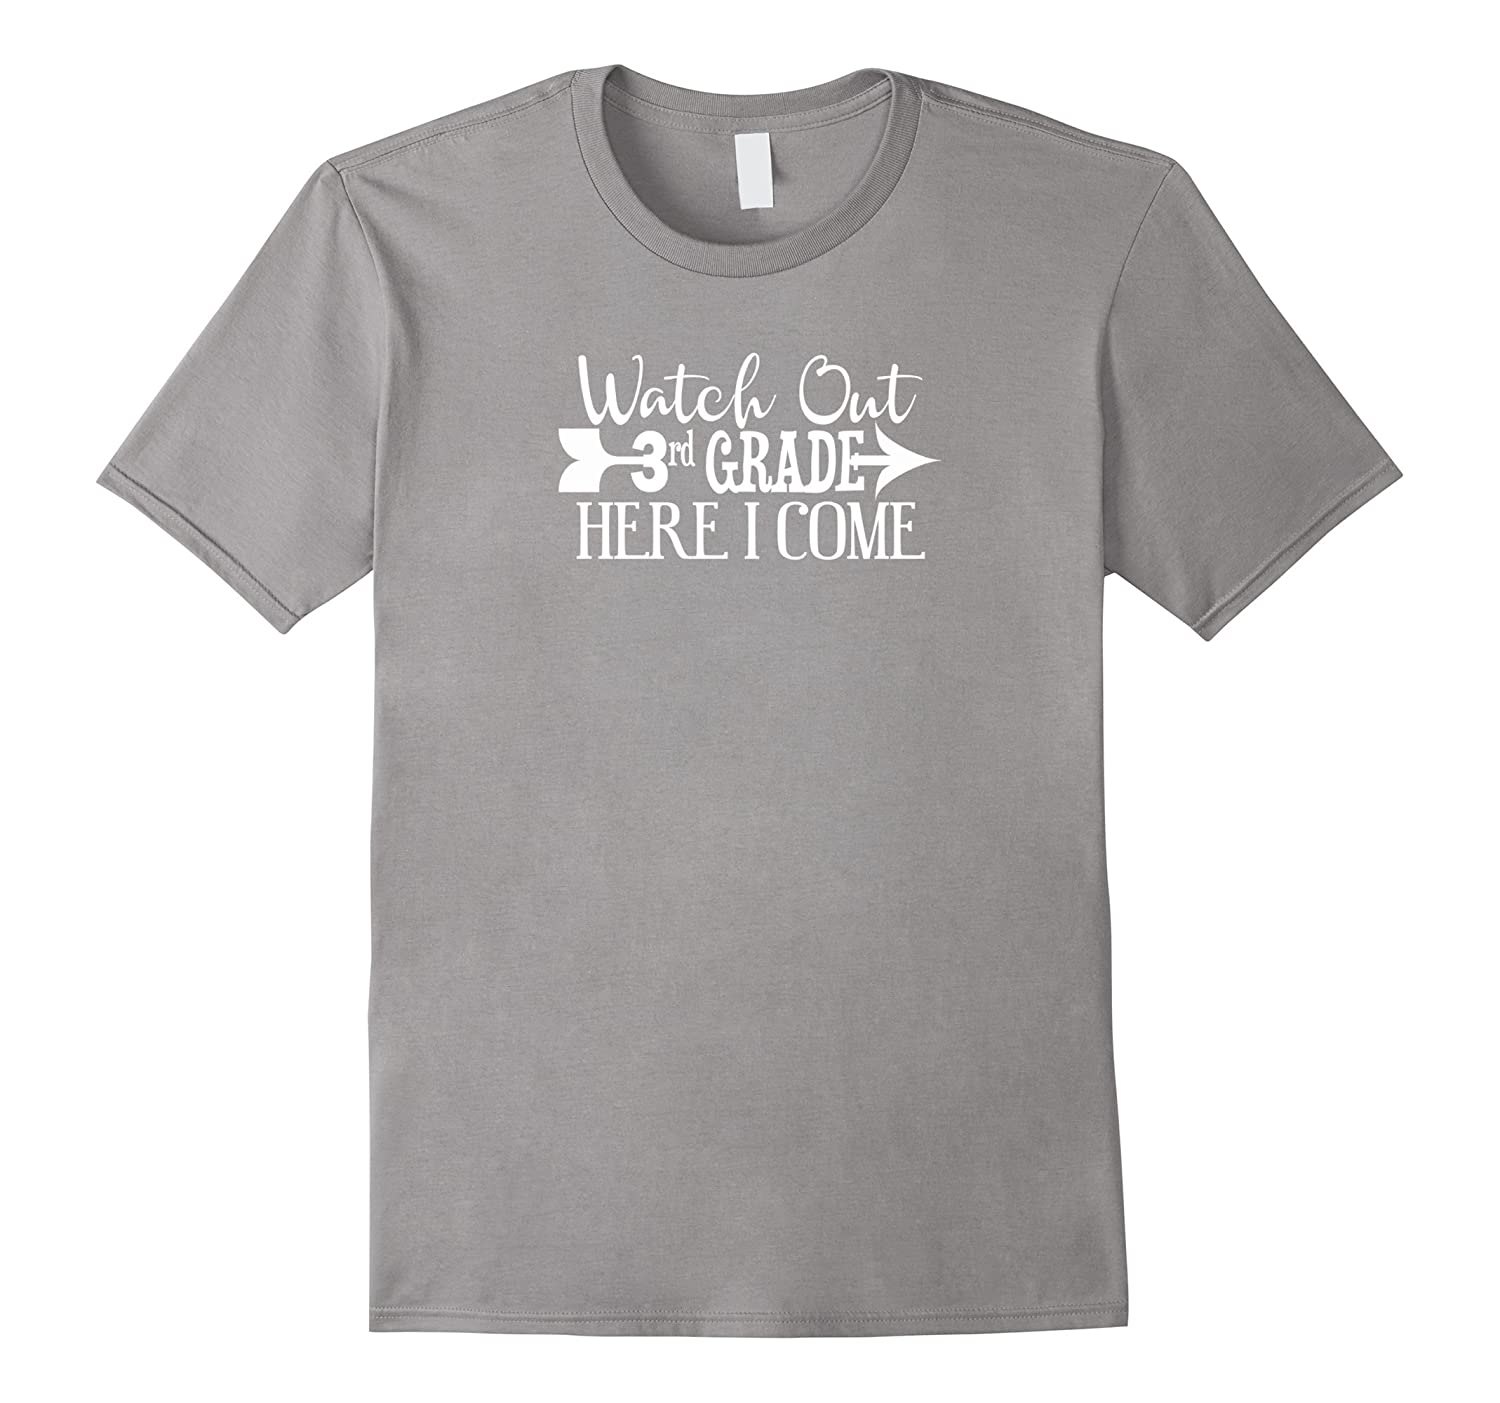 Watch Out Third 3rd Grade Here I Come Tshirt First Day Schoo-Art